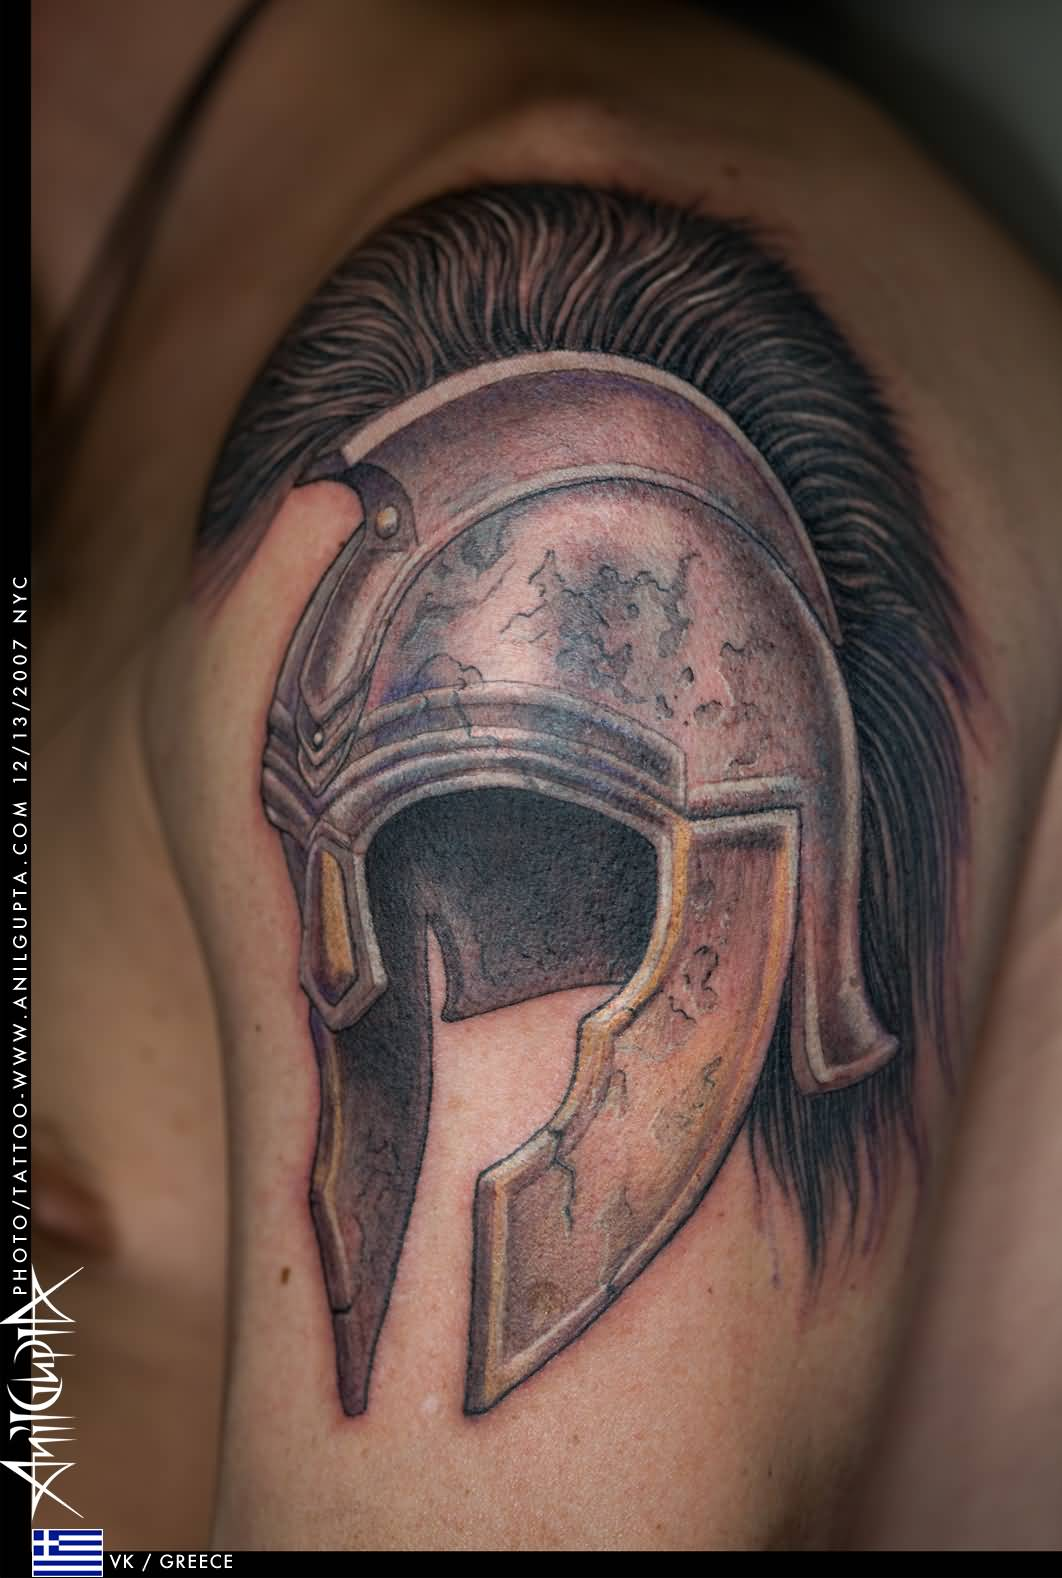 Awesome Metal Helmet Tattoo Design For Men Shoulder